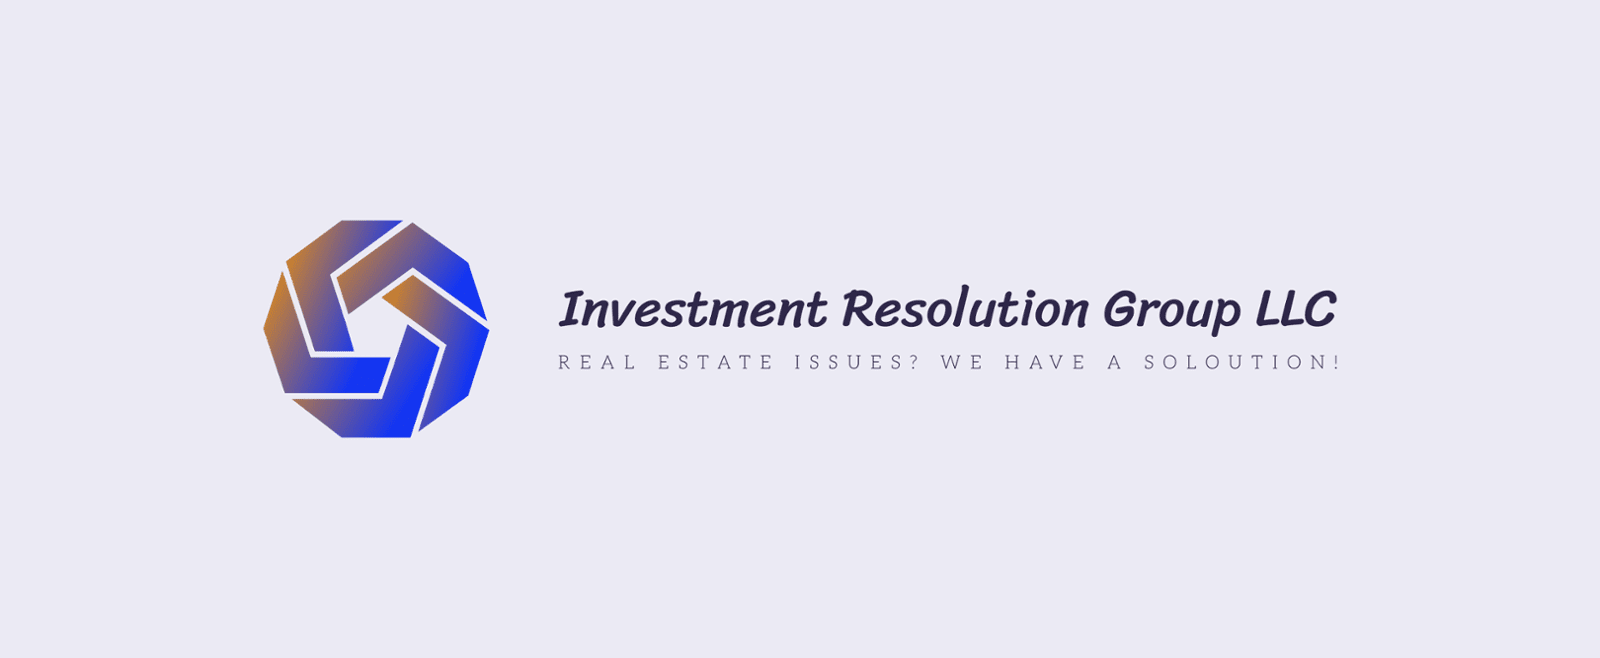 Investment Resolution Group LLC